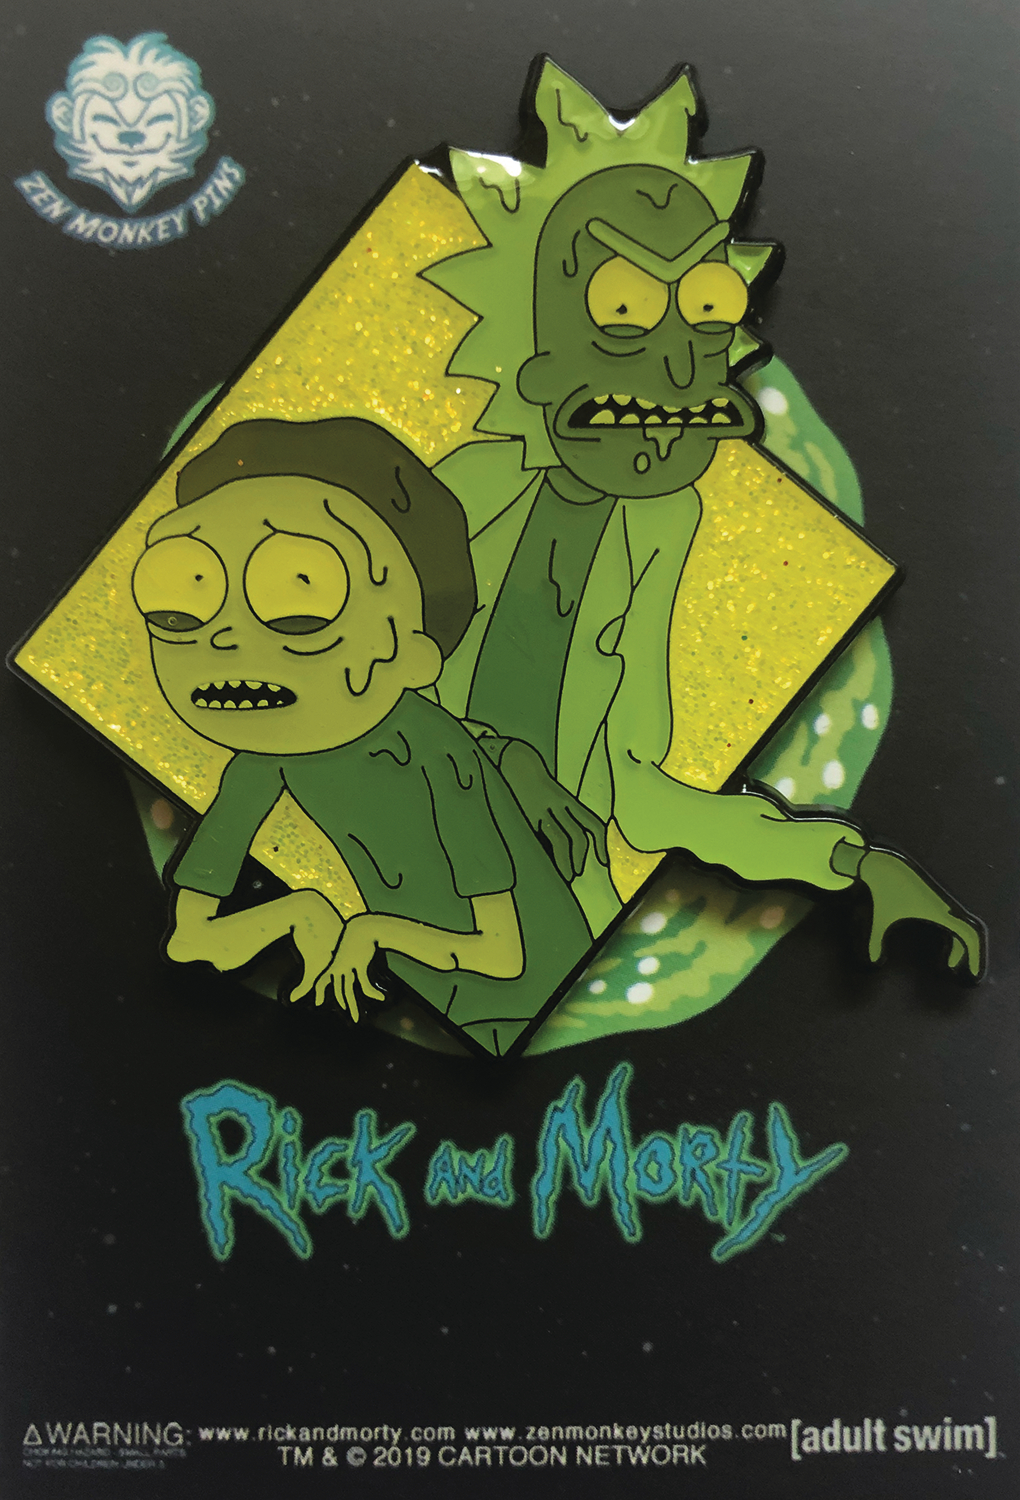 RICK AND MORTY FAMOUS MOMENTS WERE THE TOXINS PIN